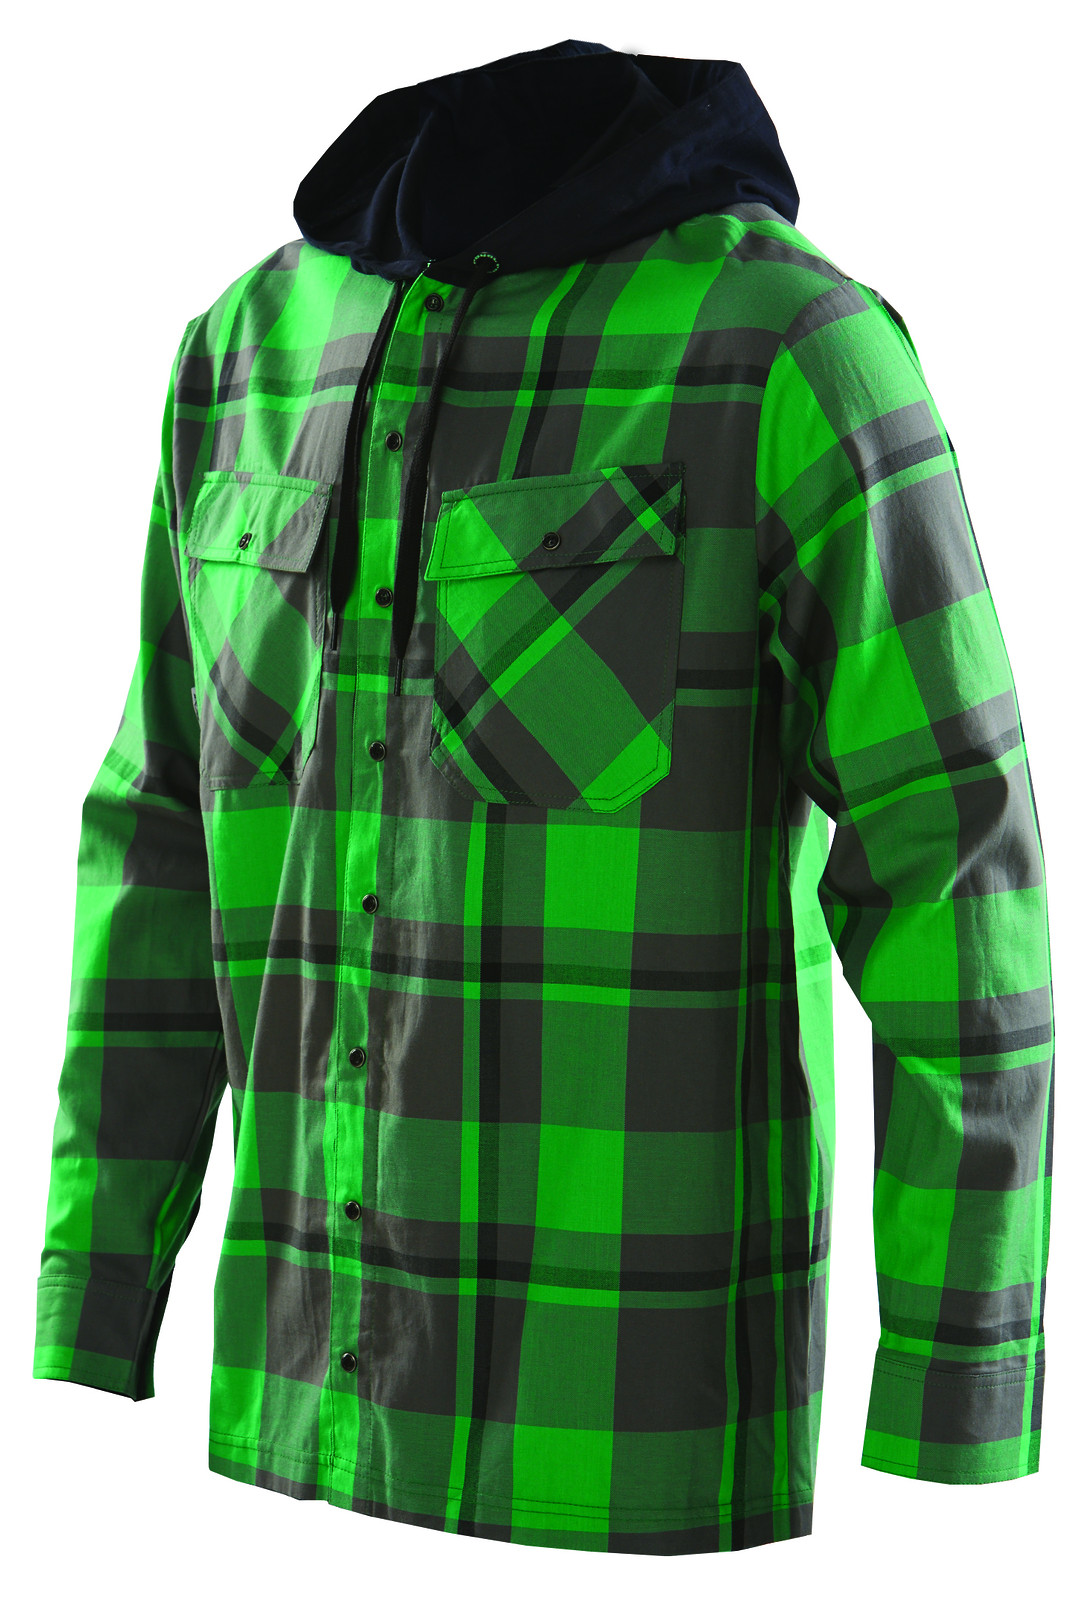 Royal 2014 Cutter Hoody  cutter shirt green f